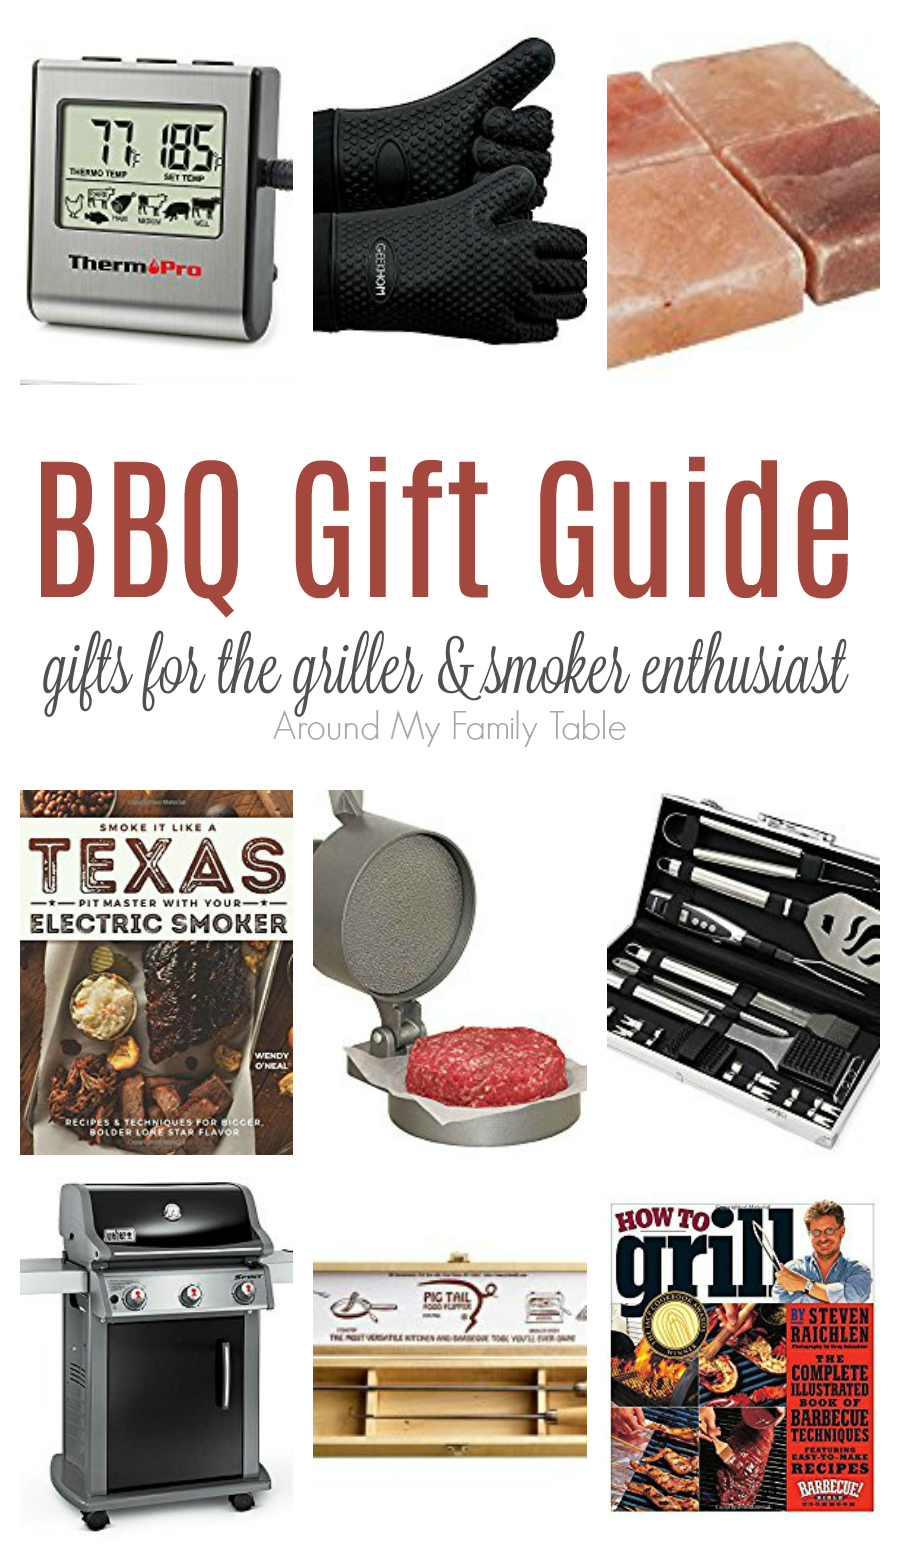 Are you looking for the perfect BBQ Gift Ideas?  Then this BBQ Gift Guide is just what you are looking for.  Whether you are shopping for Father's Day, a birthday, or a Christmas gift you'll find my favorite BBQ items on this list that make great gifts.